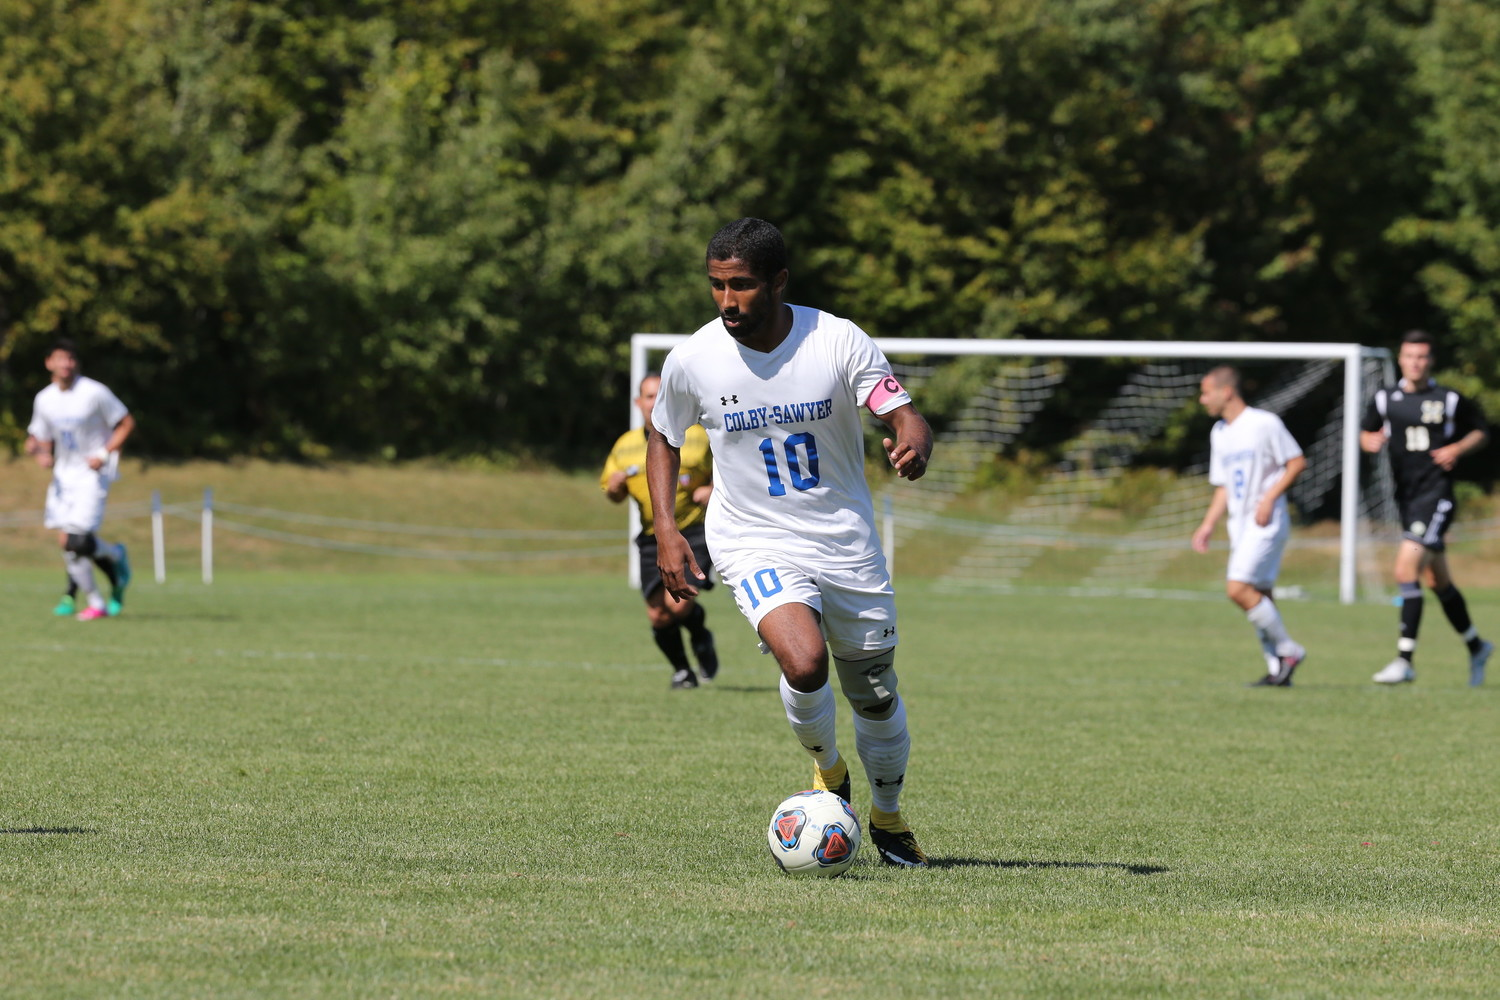 Colby-Sawyer senior and Barrington High School graduate Denali Sexton recently earned his second consecutive North Atlantic Conference (NAC) Men's Soccer Player of the Year award.